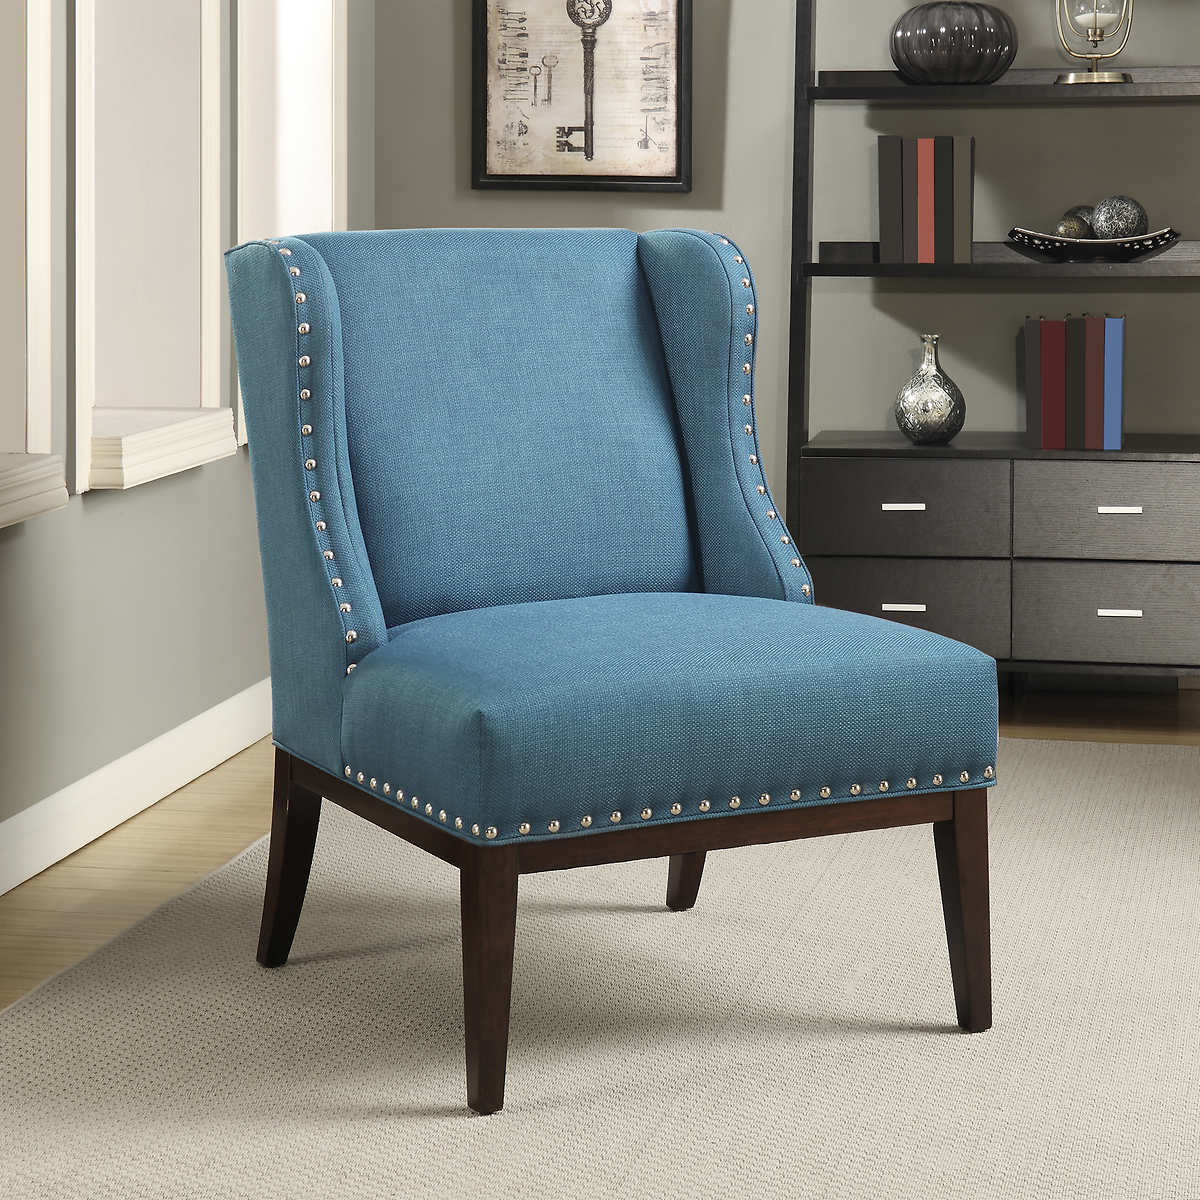 Teal wingback chair - Kitts Fabric Wingback Accent Chair